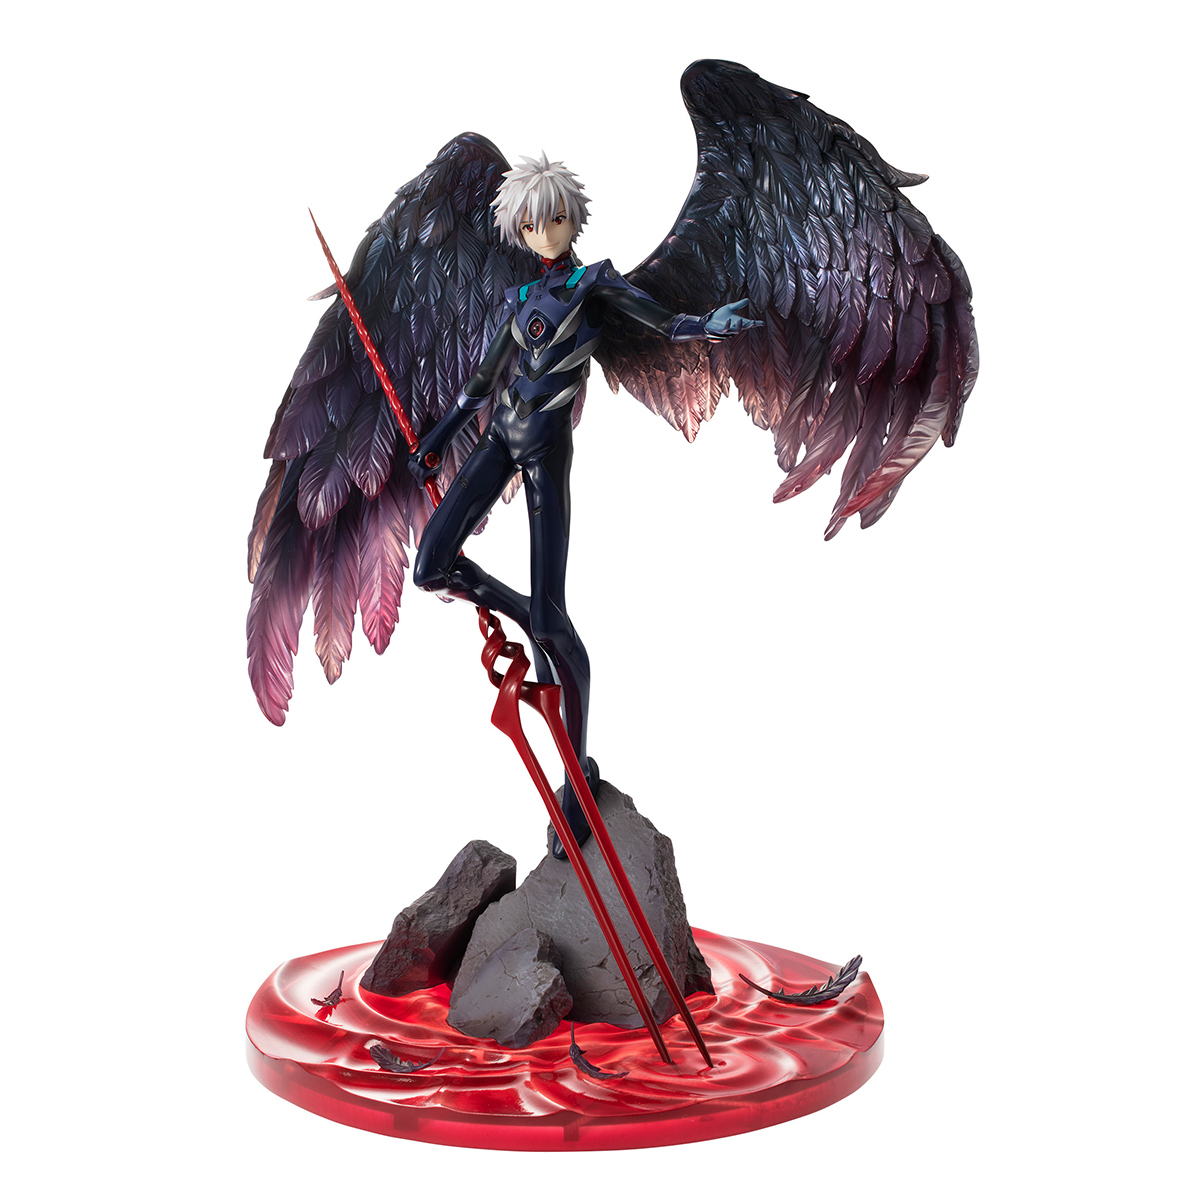 Kaworu Nagisa Movie Ver Evangelion Figure